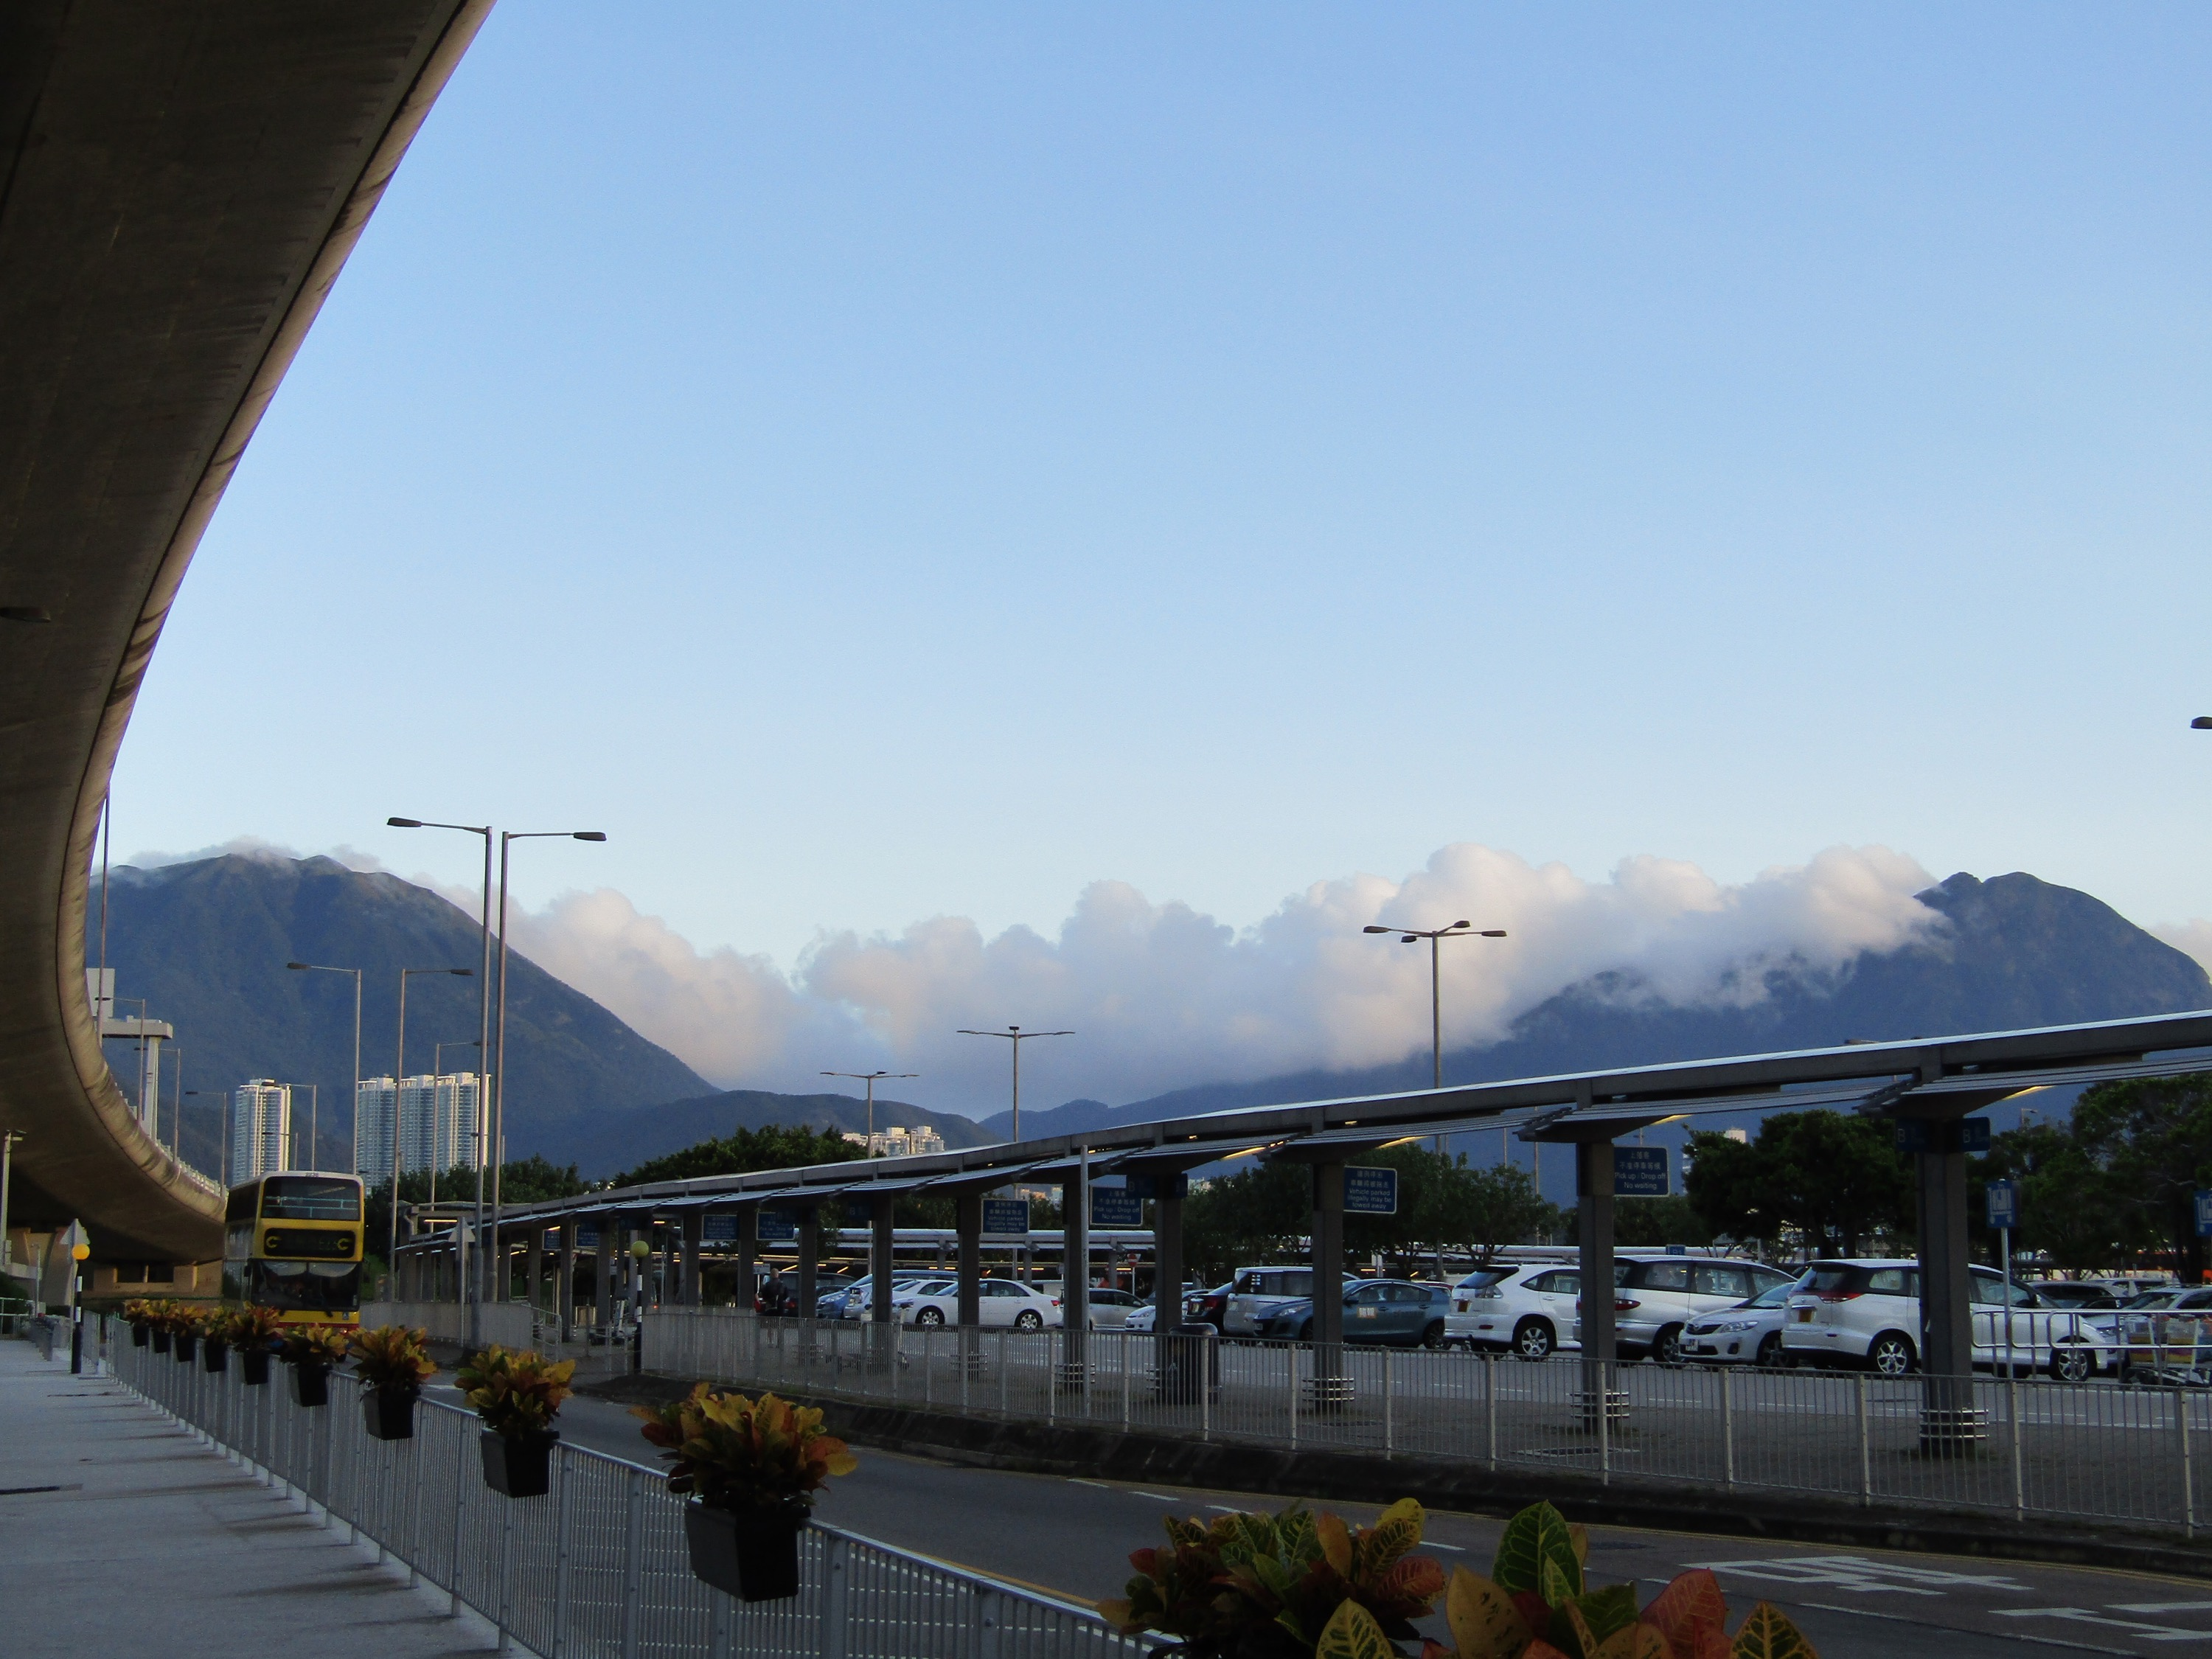 The view of the clouds rolling in over the mountains at Hong Kong International Airport made up for the fiasco of catching a bus to the city (honestly, who has exact change when they leave the airport?).